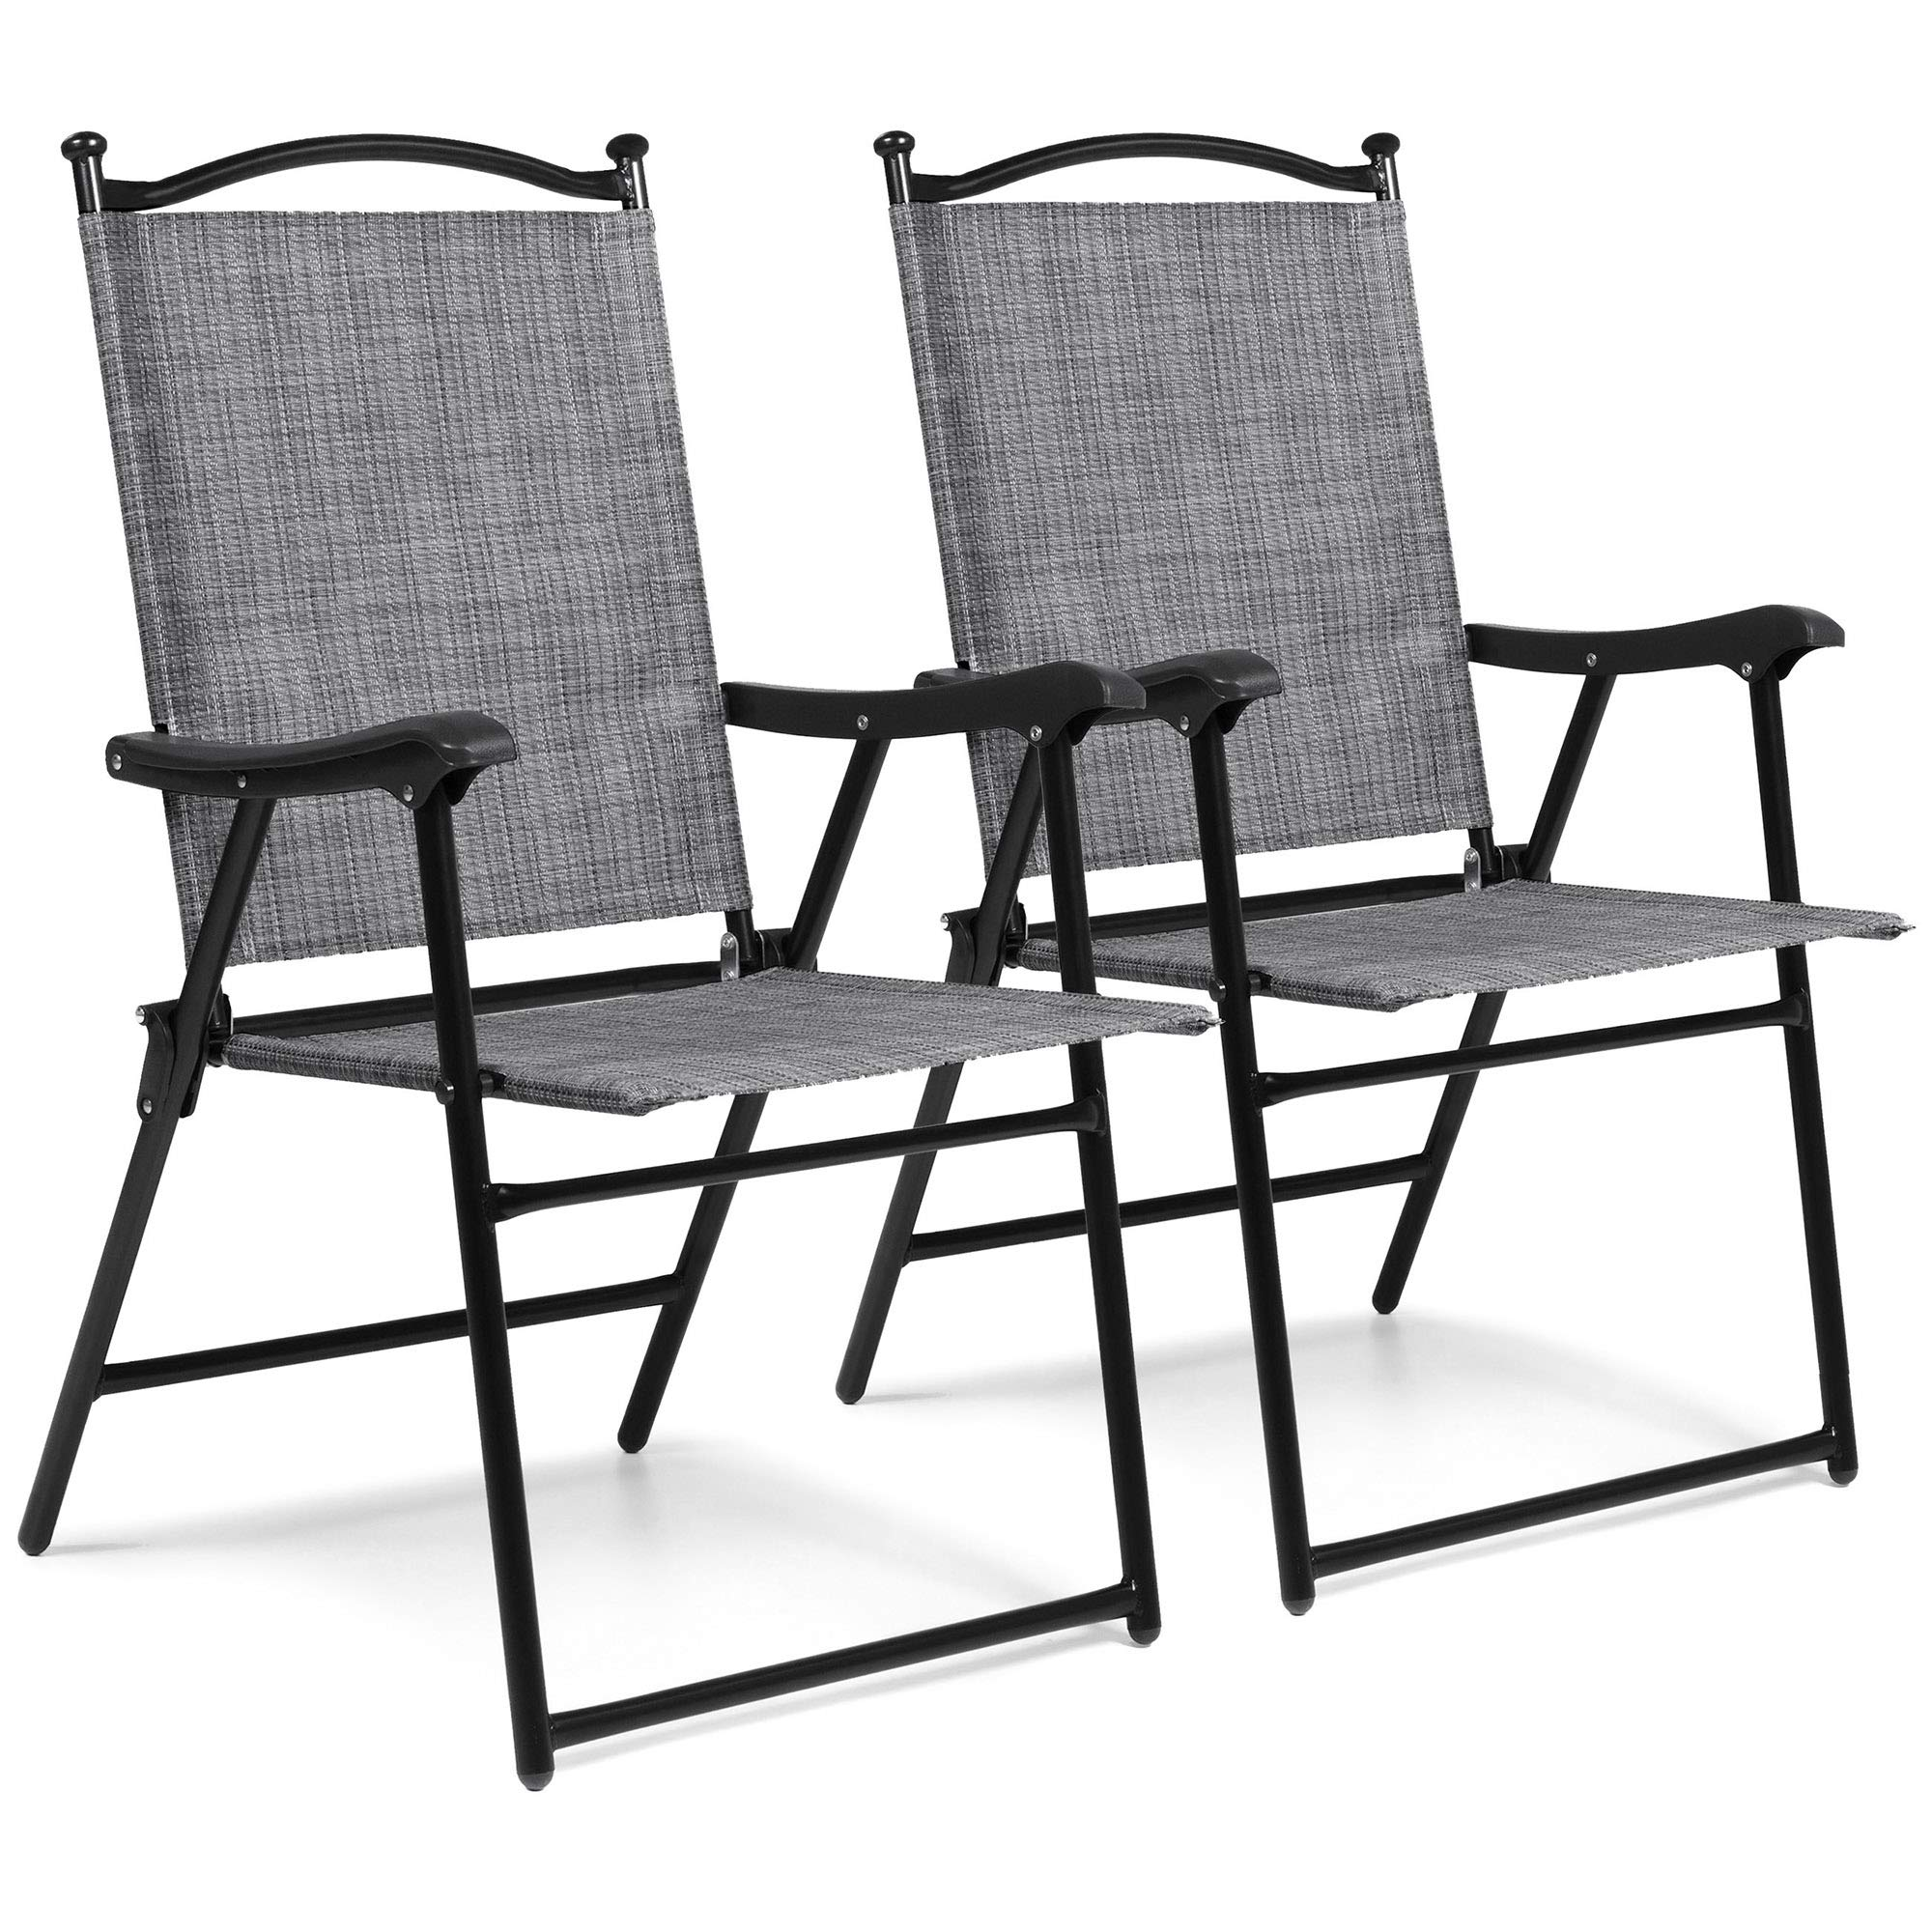 Best Choice Products Set of 2 Outdoor Mesh Fabric Portable Folding Sling Back Chairs for Backyard, Picnics, Beach, Camping, Patio, Porch, Garden, Pool w/UV-Resistance - Gray by Best Choice Products